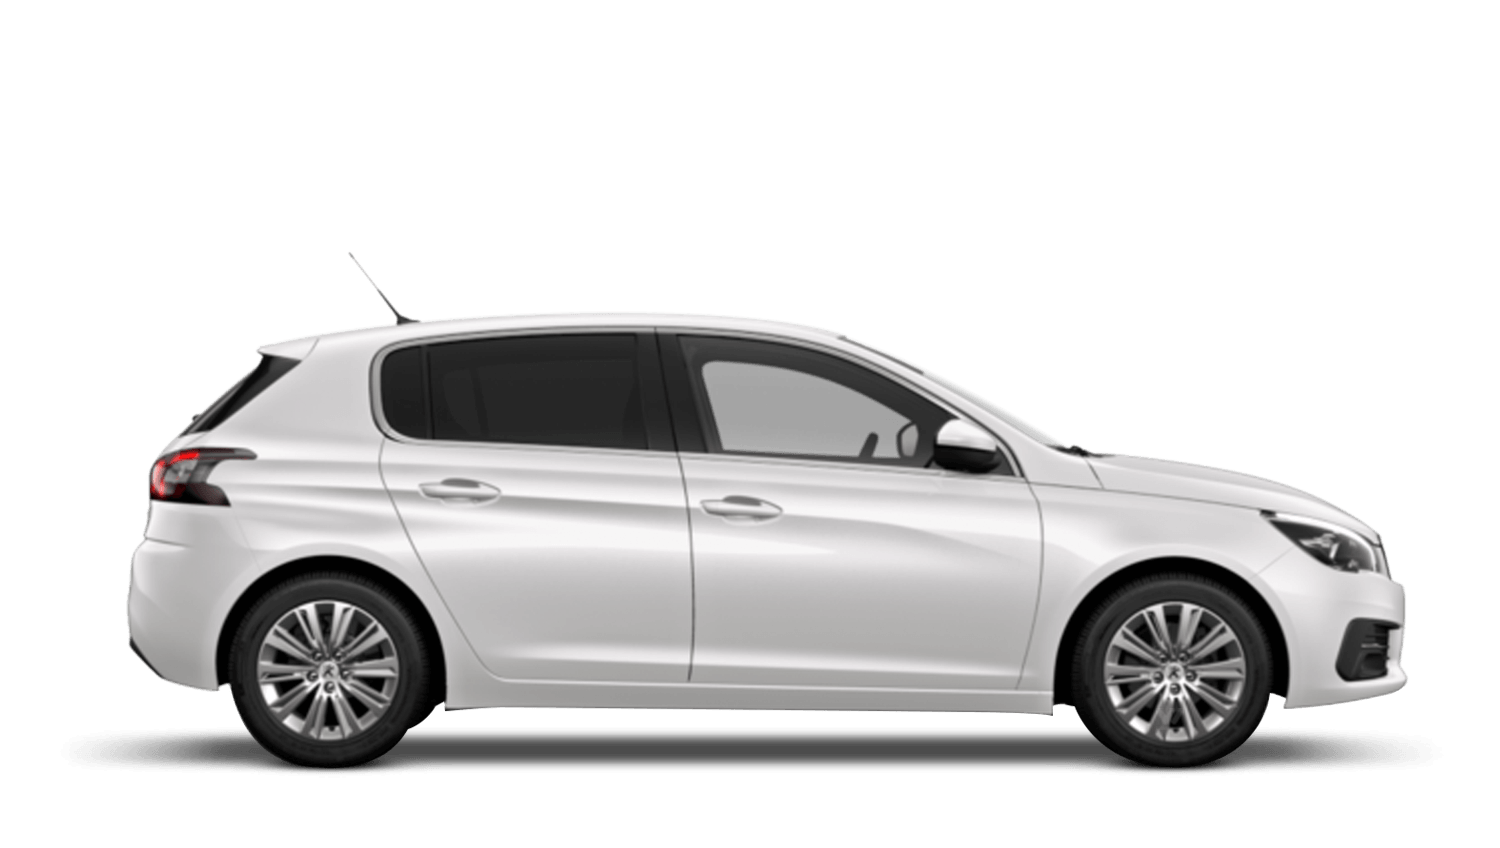 Pearlescent White Peugeot 308